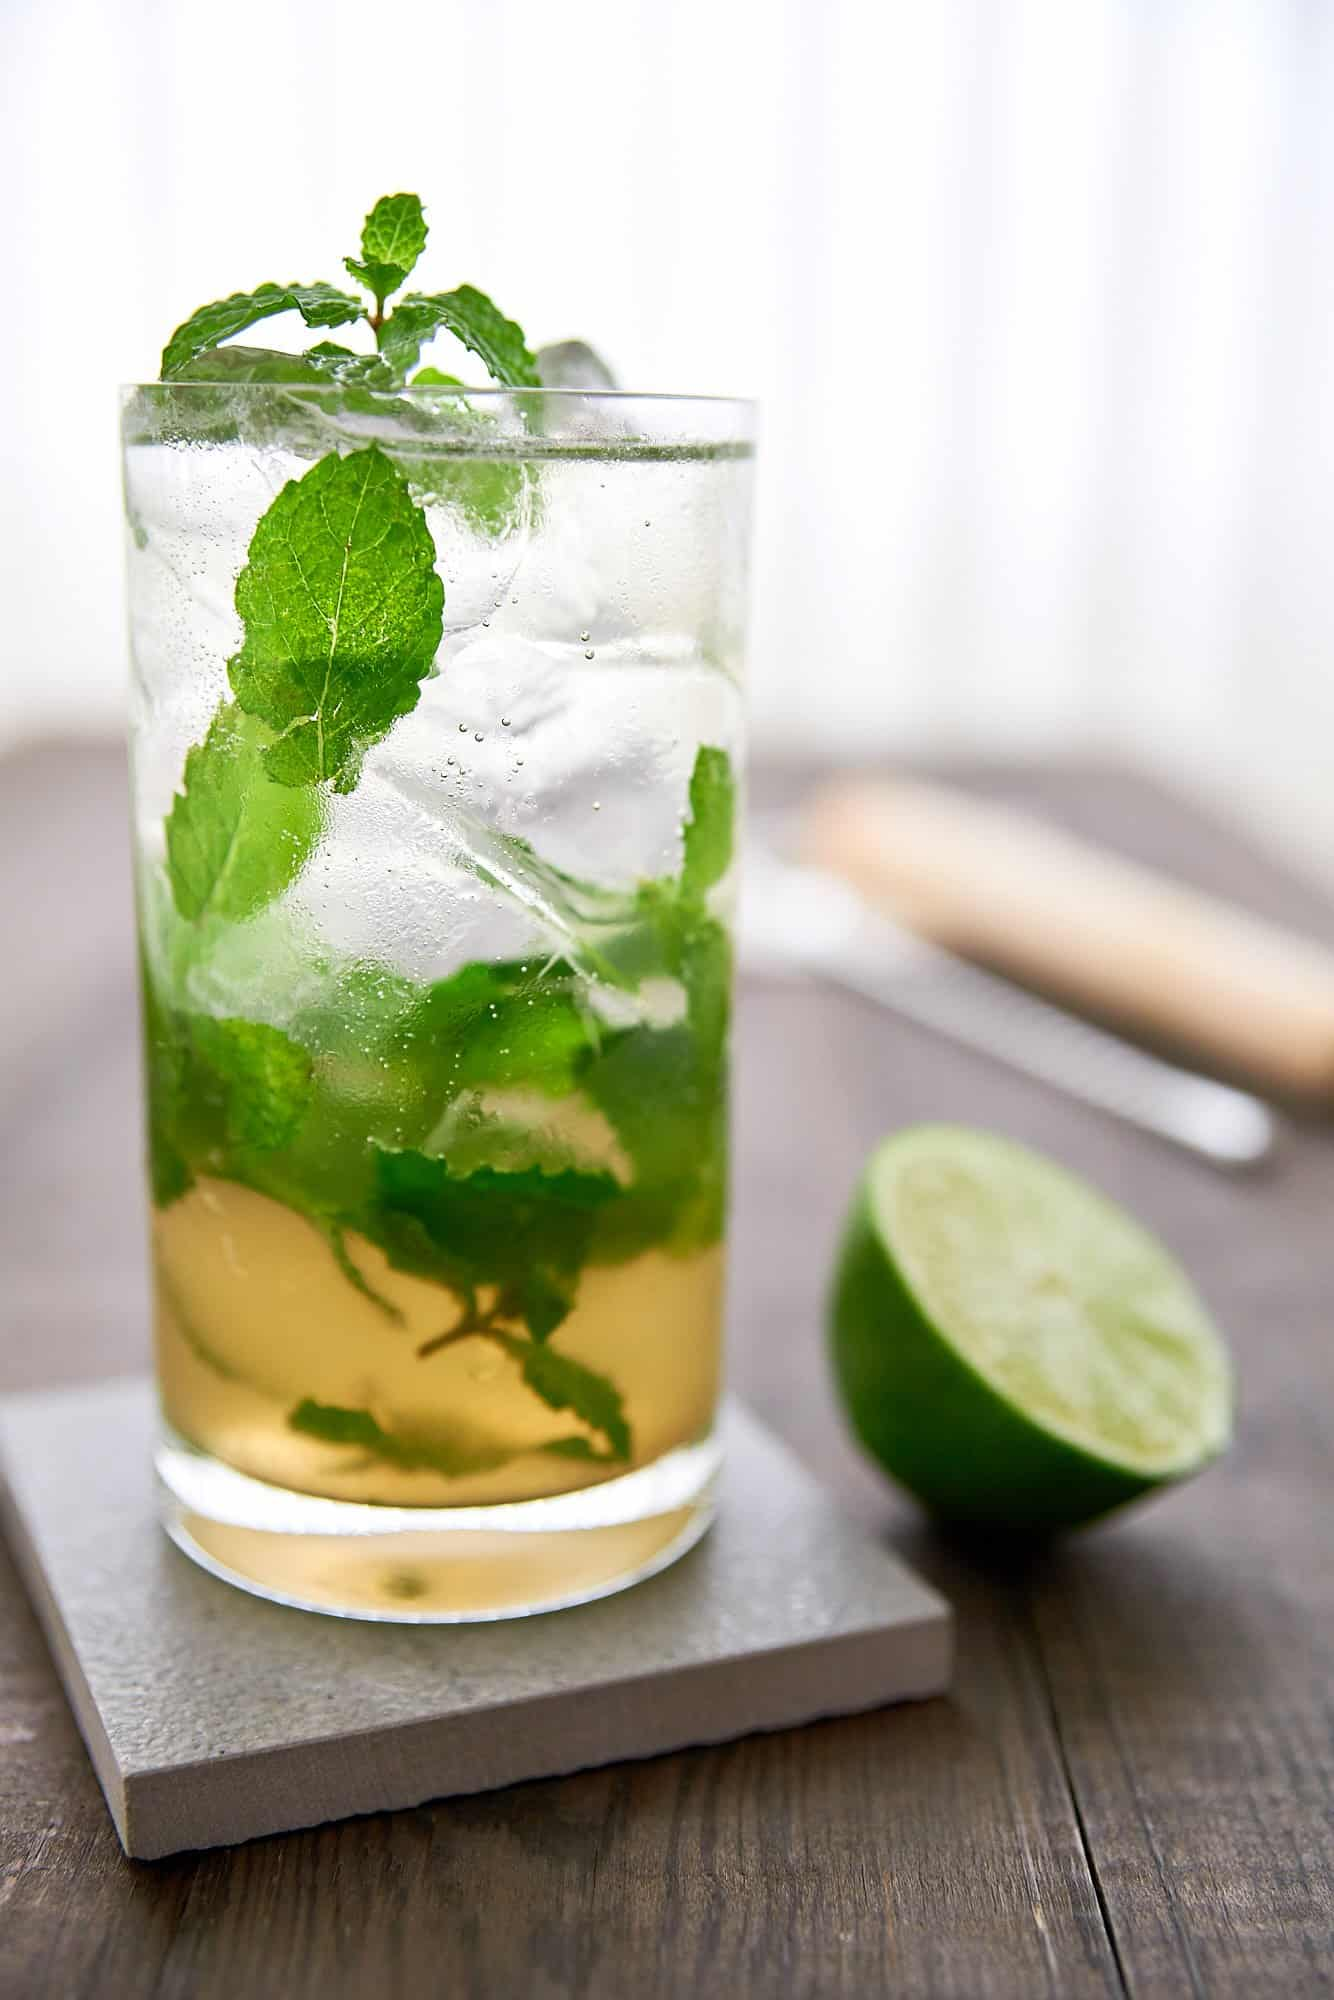 A delicious take on on the classic mojito cocktail using Japanese brown sugar shochu instead of rum.